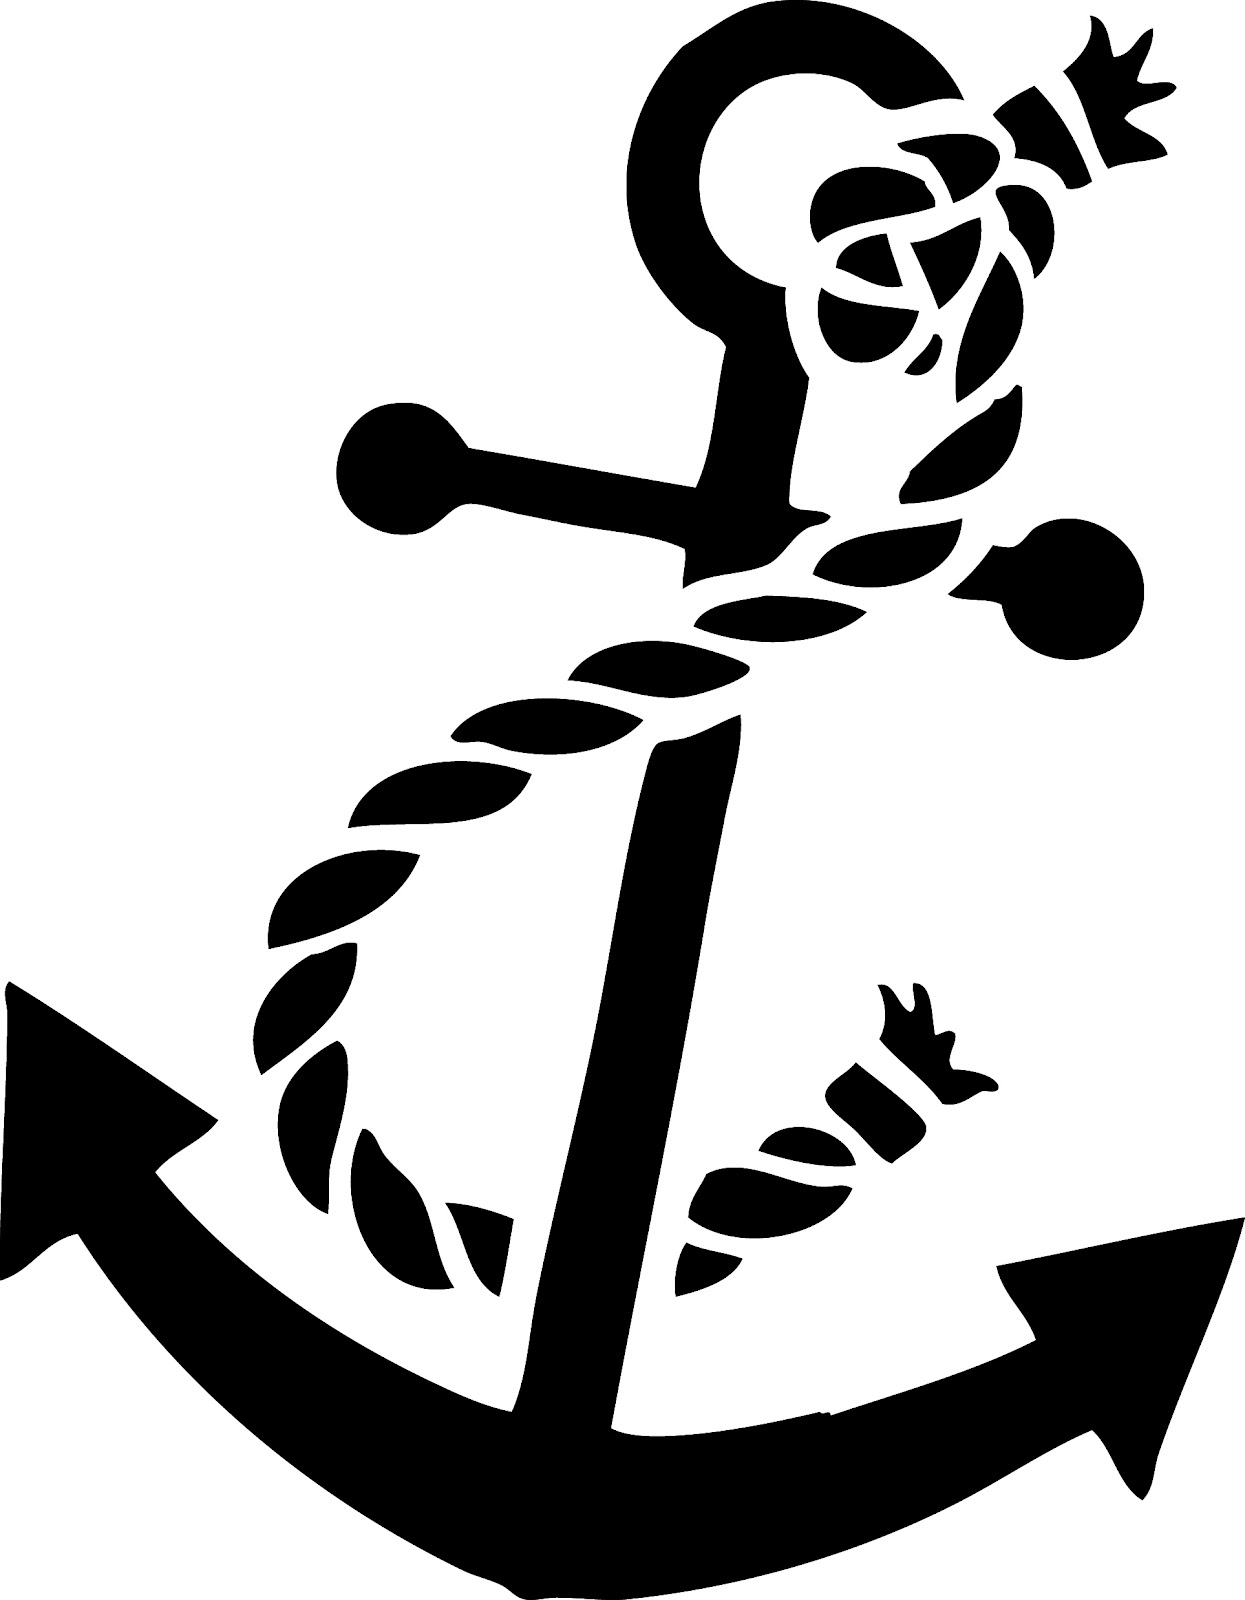 Anchor with long rope clipart banner transparent Free Pictures Of Boat Anchors, Download Free Clip Art, Free Clip Art ... banner transparent